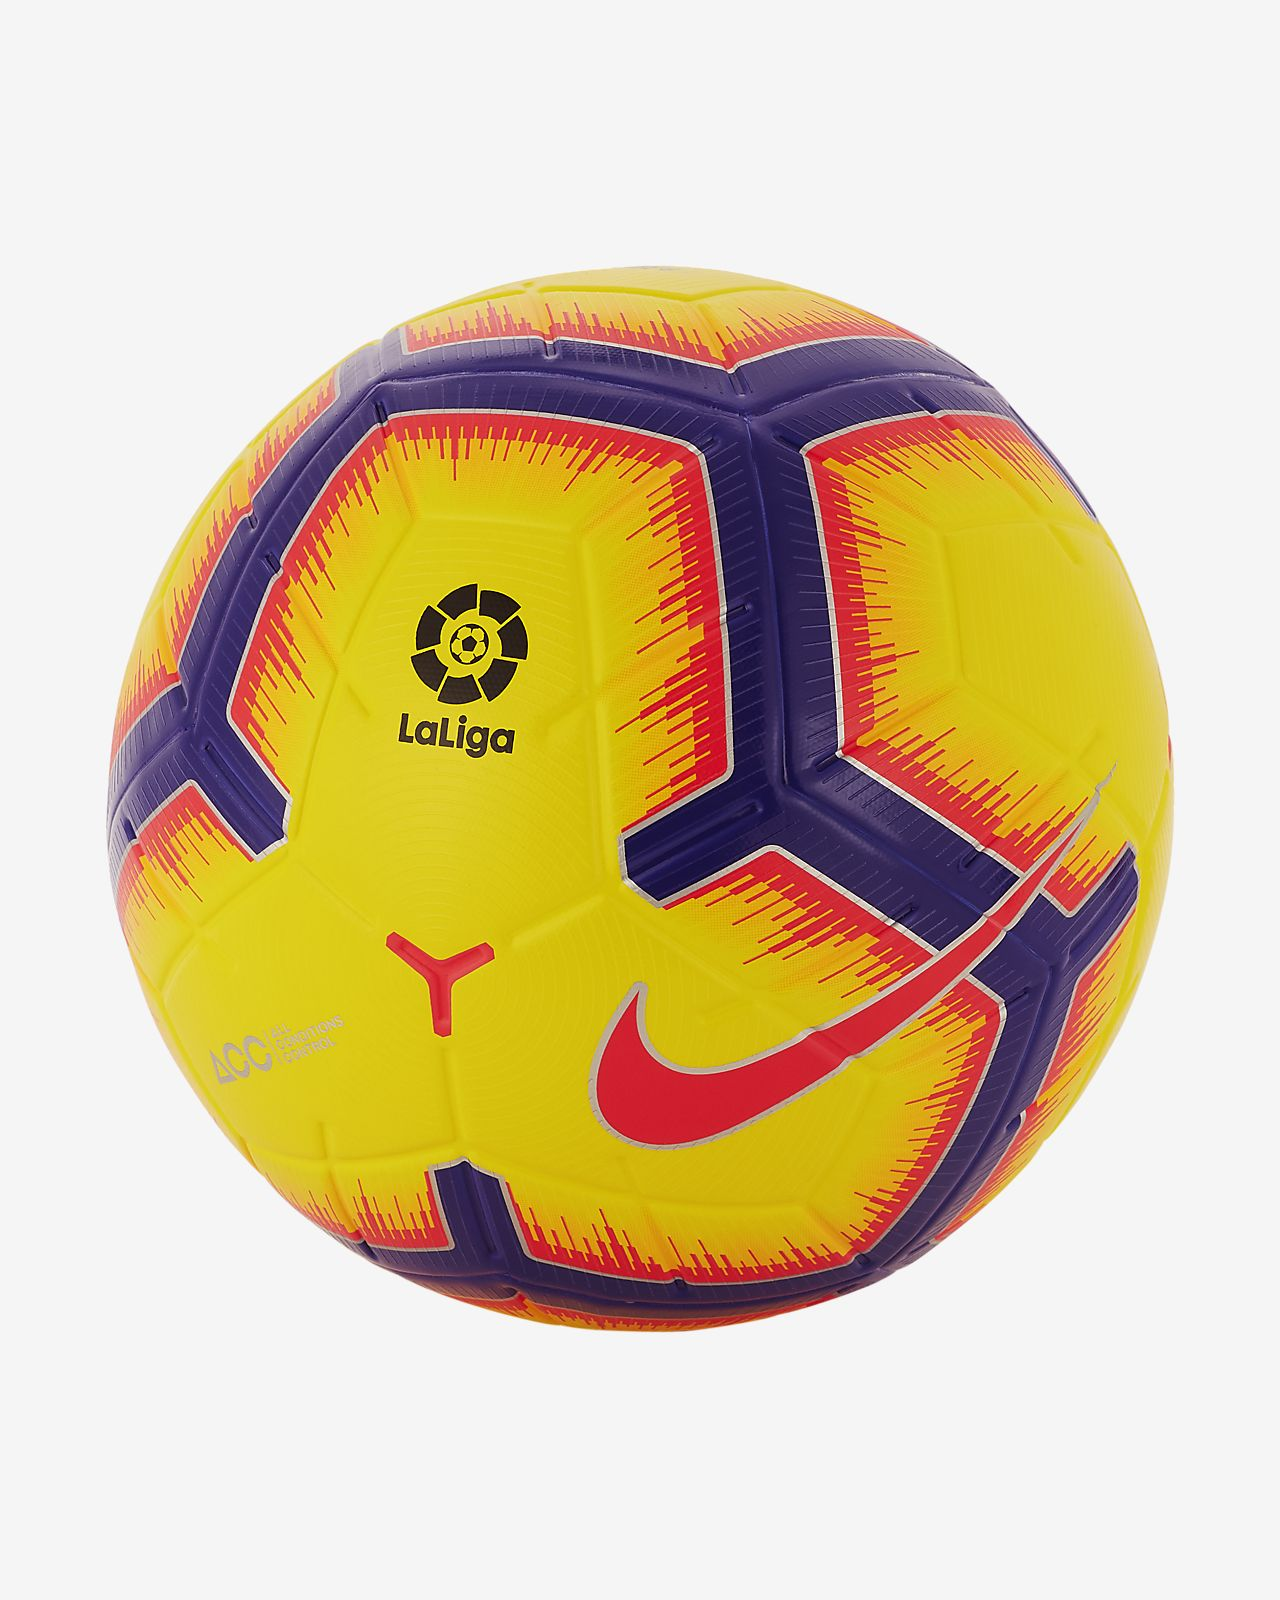 Ballon de football La Liga Merlin